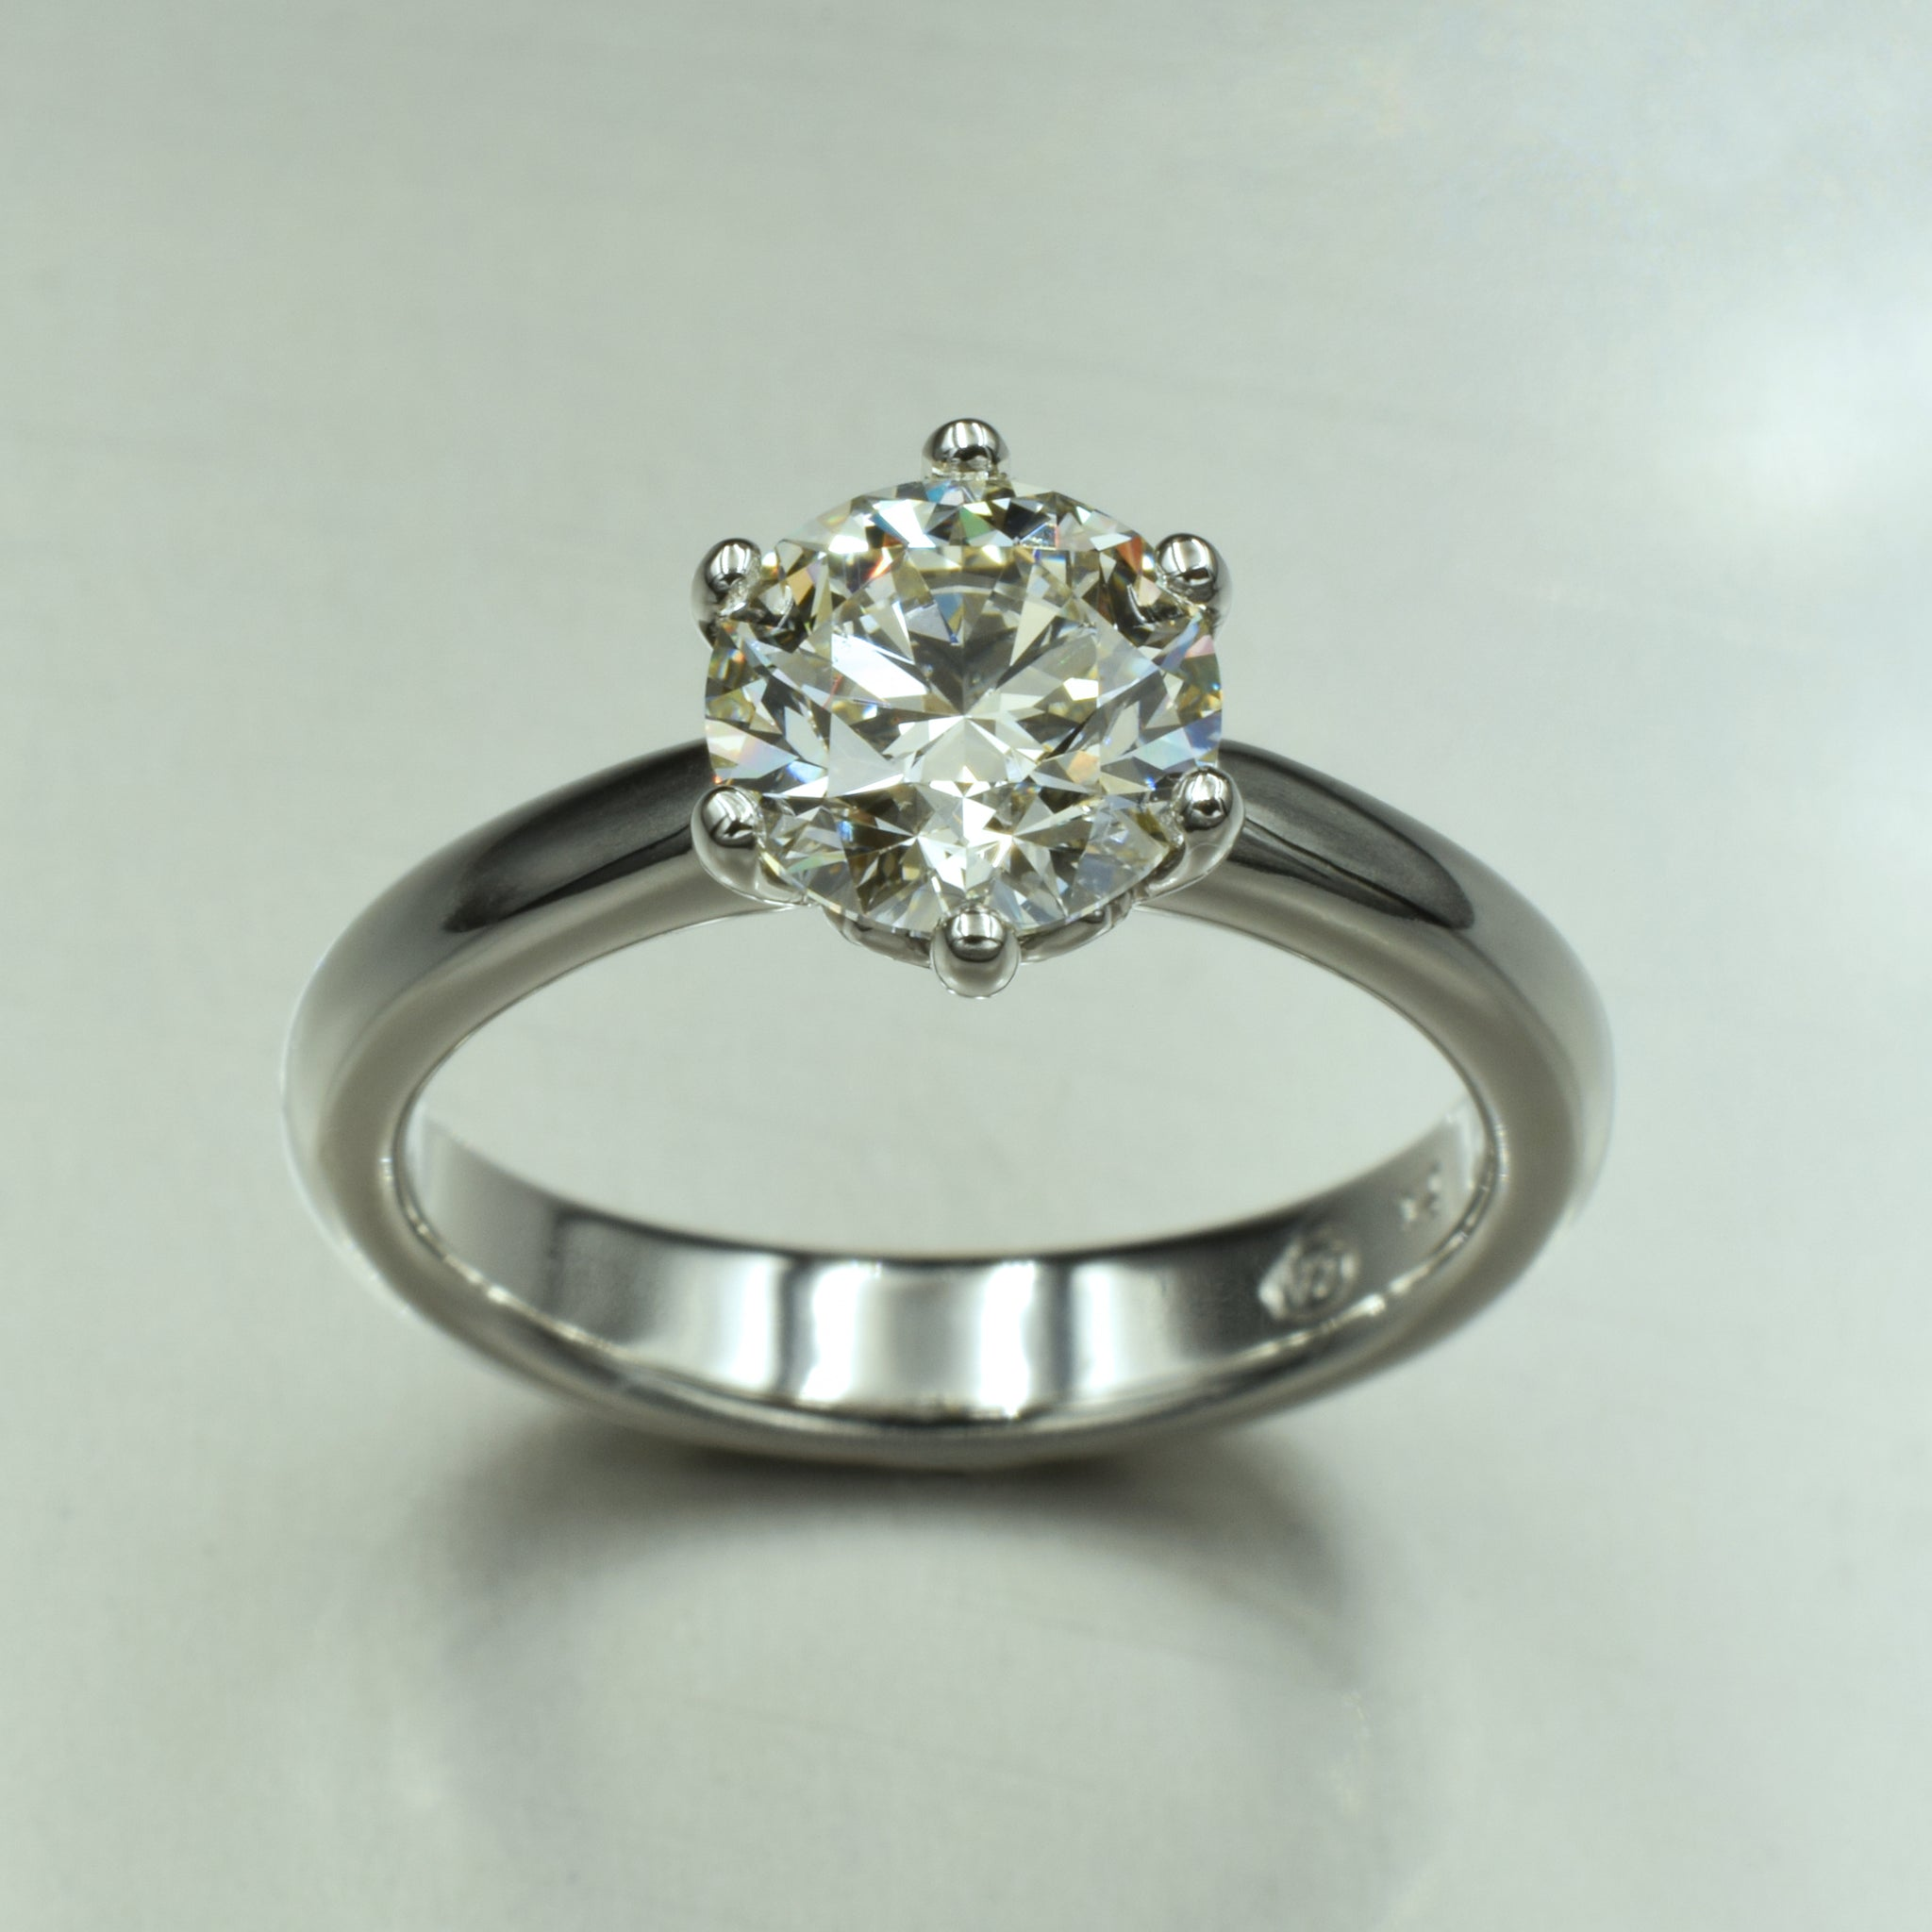 18K white gold & diamond six-claw solitaire